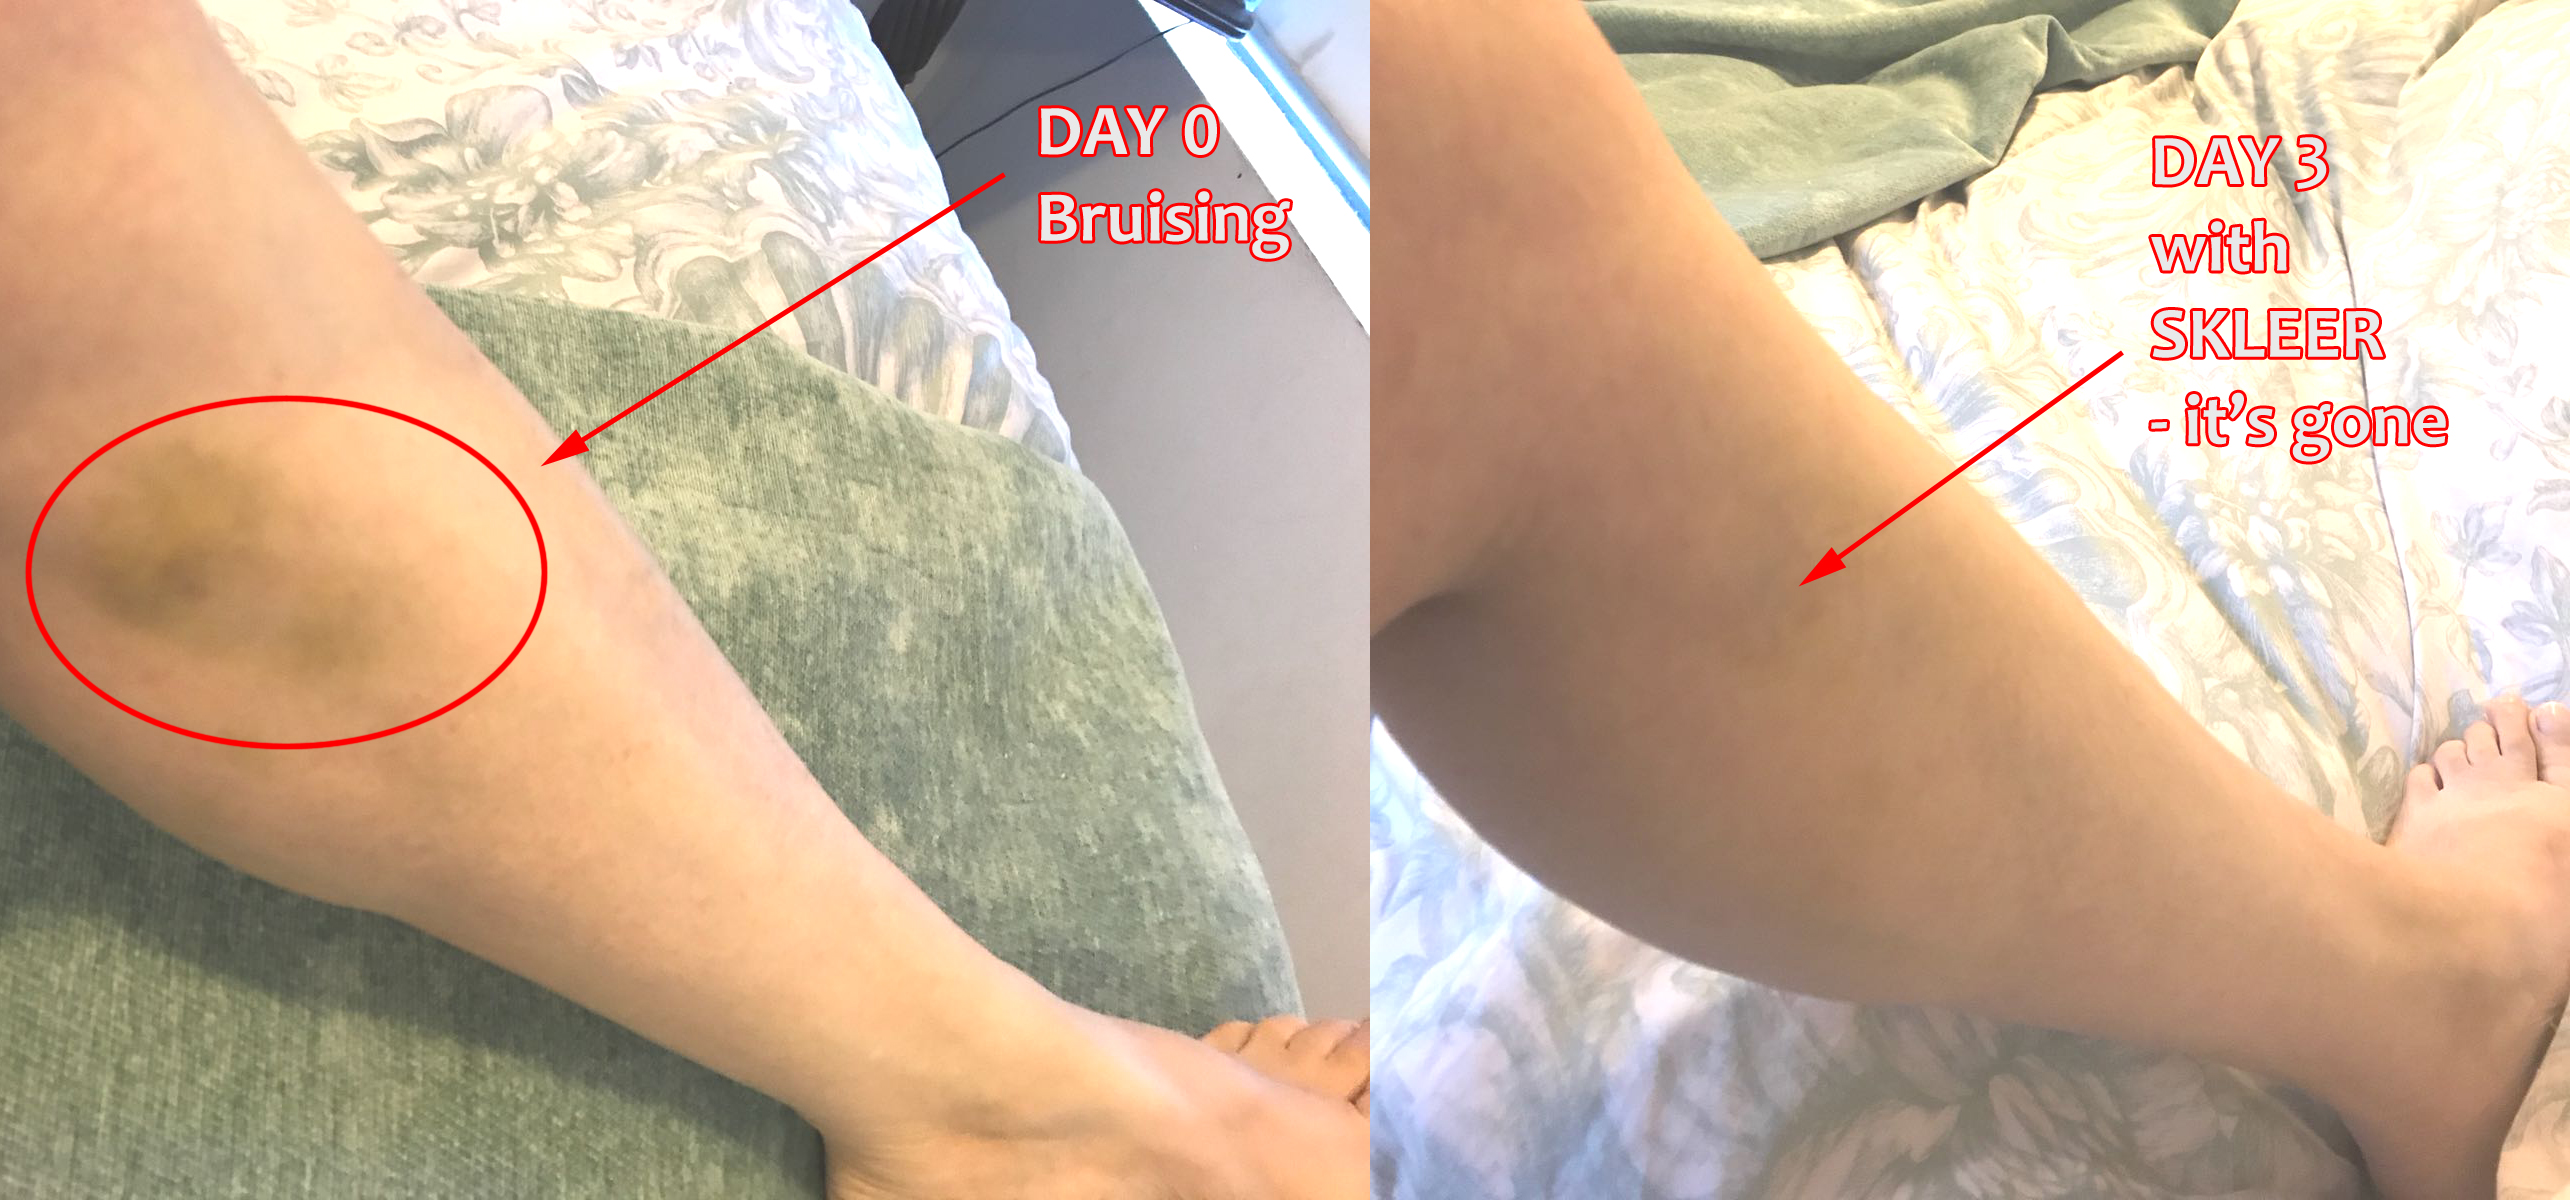 Bruising Before And After With SKLEER